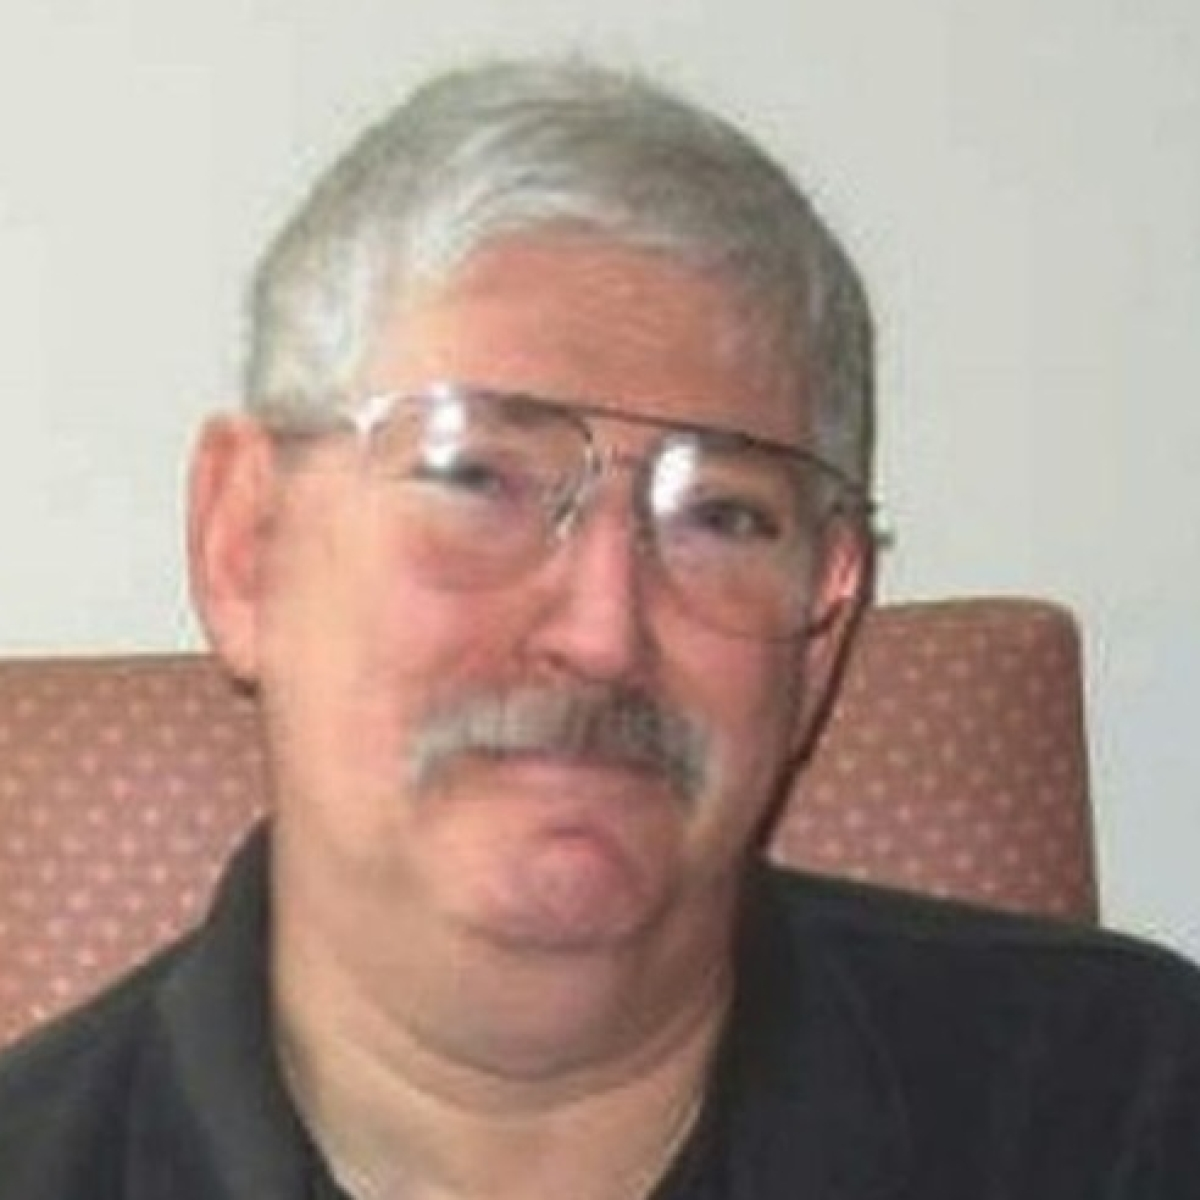 Ex-FBI Bob Levinson agent missing for 13 years died in Iran custody, says family